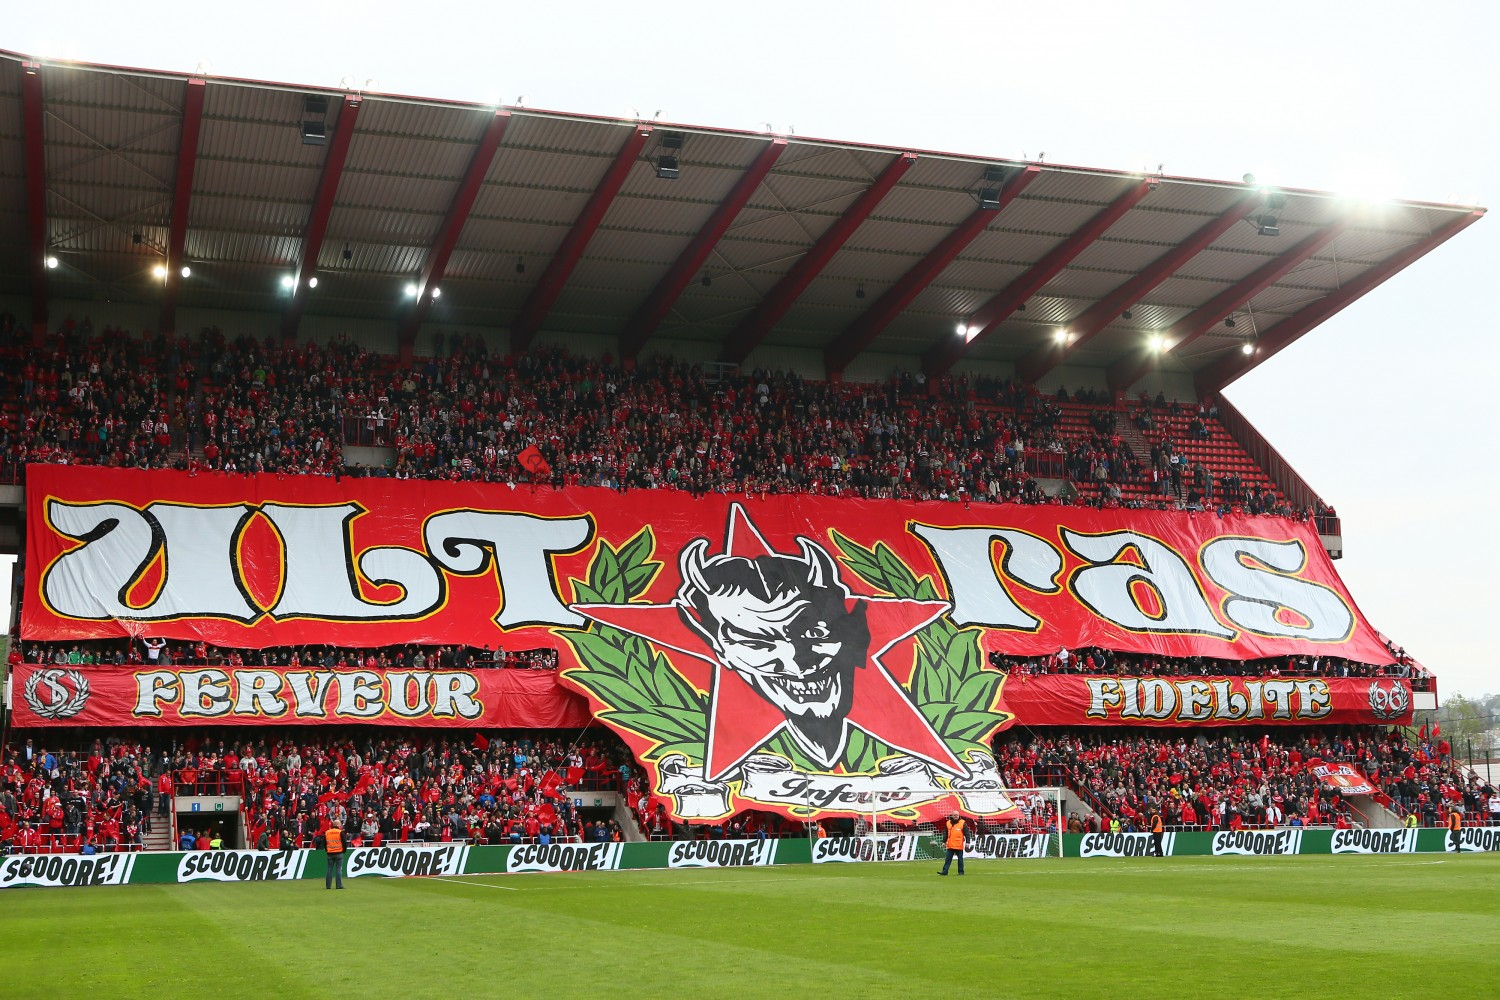 119-rscl-zulte-waregem-po1-e1391001231771 Planning a Football Trip to Liege